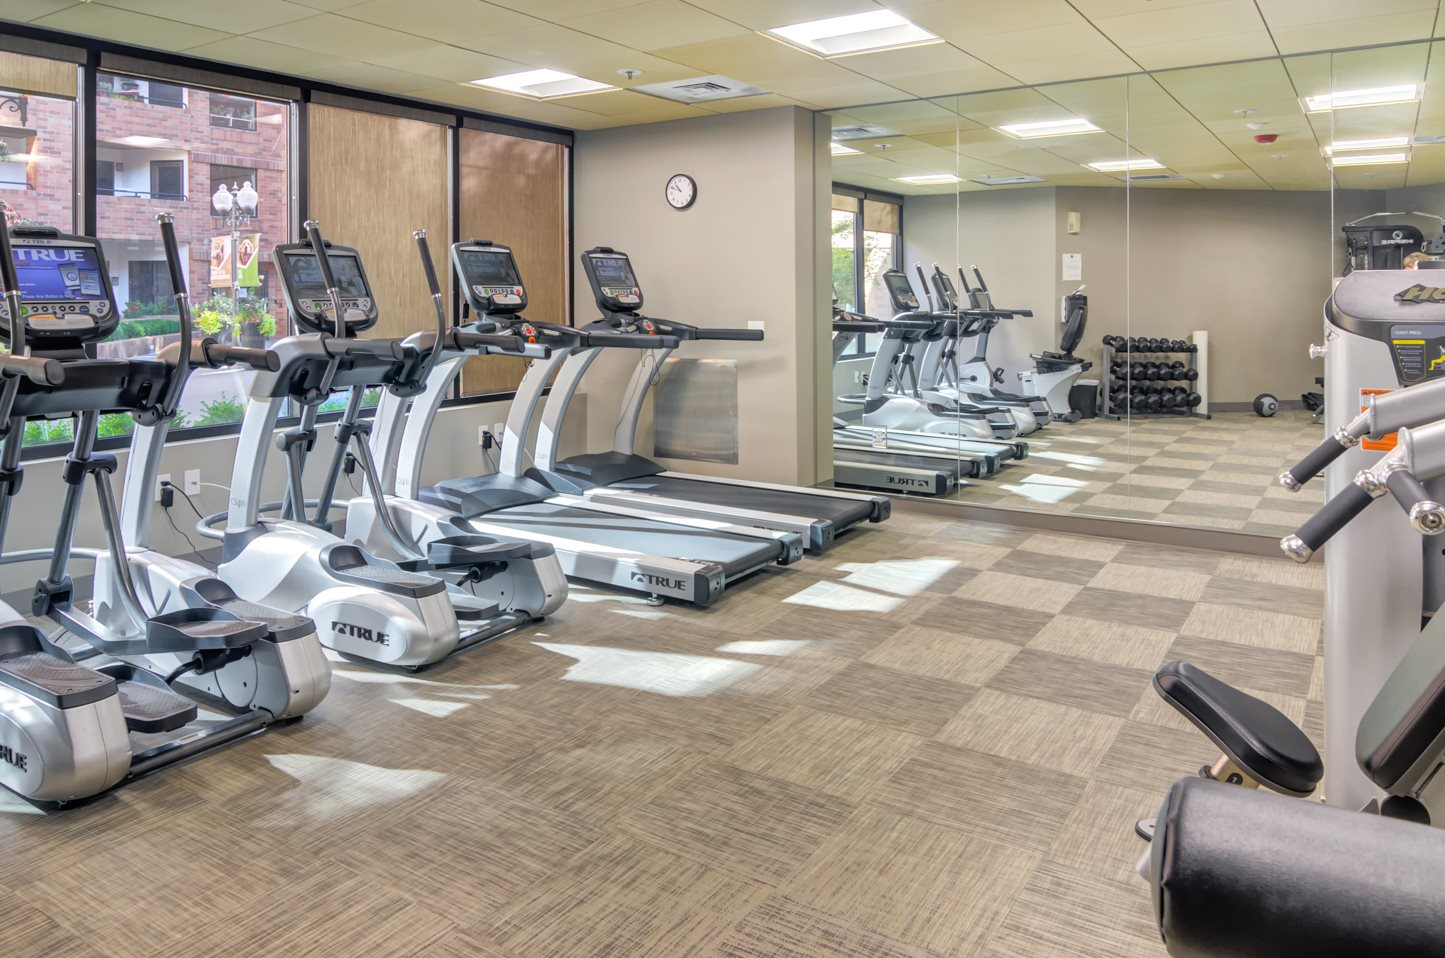 renovated fitness center with state-of-the-art equipment